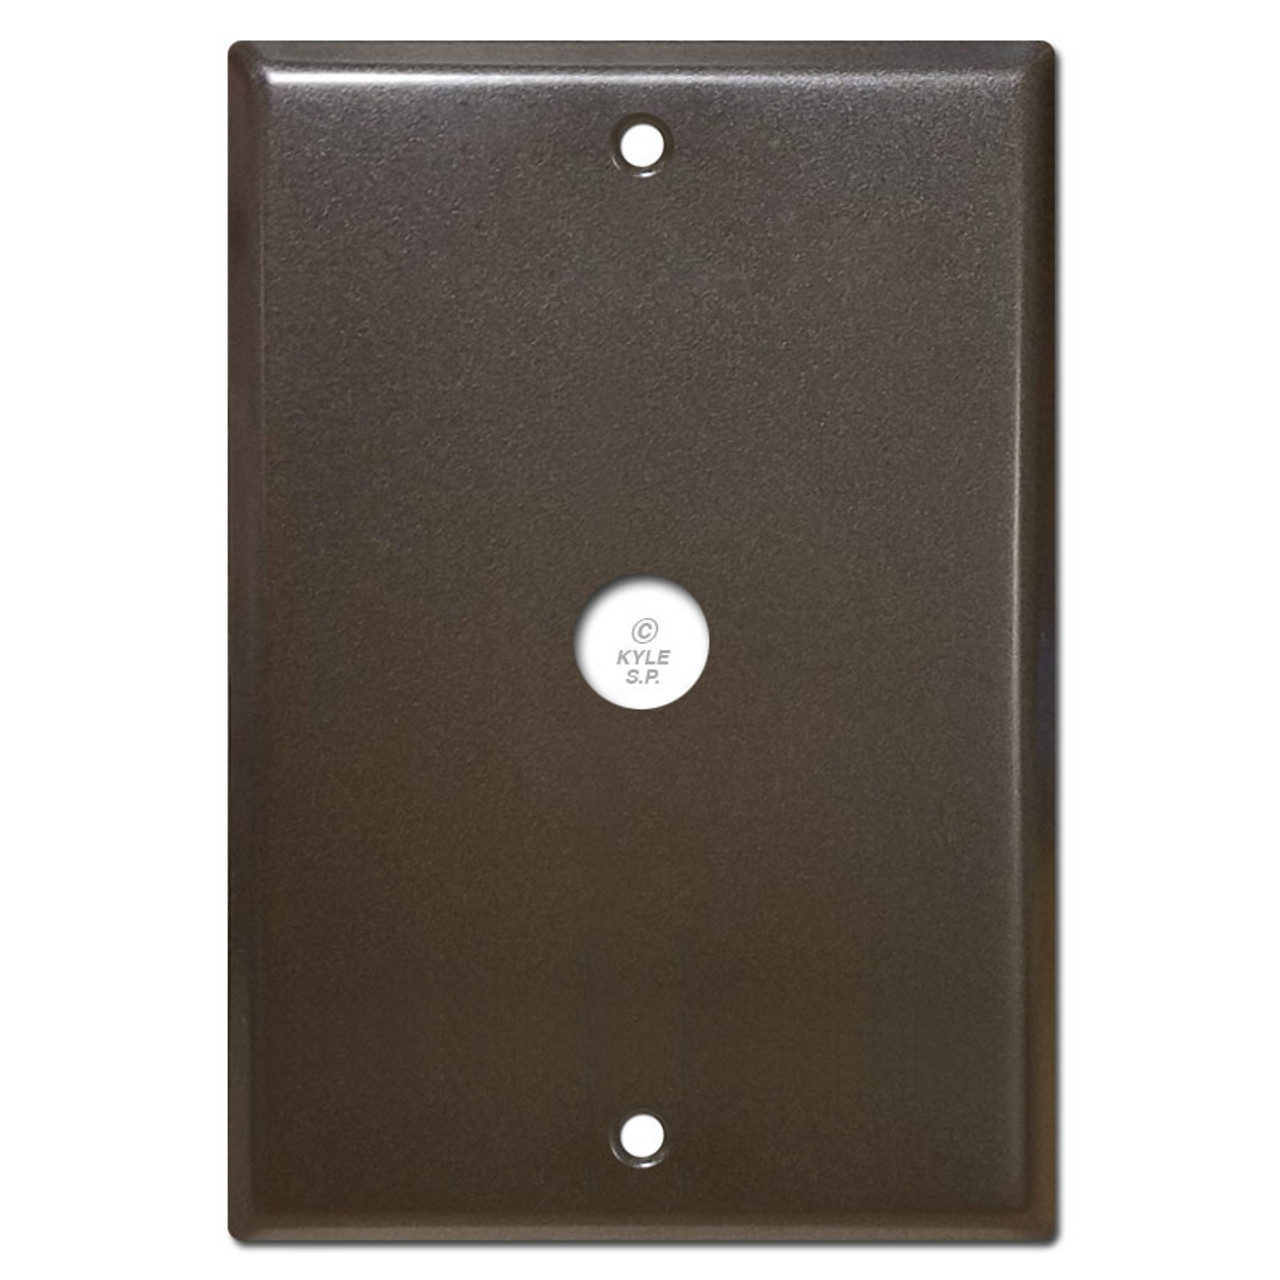 Picture of: 6 4 Nutone Wall Box Cover With Door Bell Hole 5 25 Screws